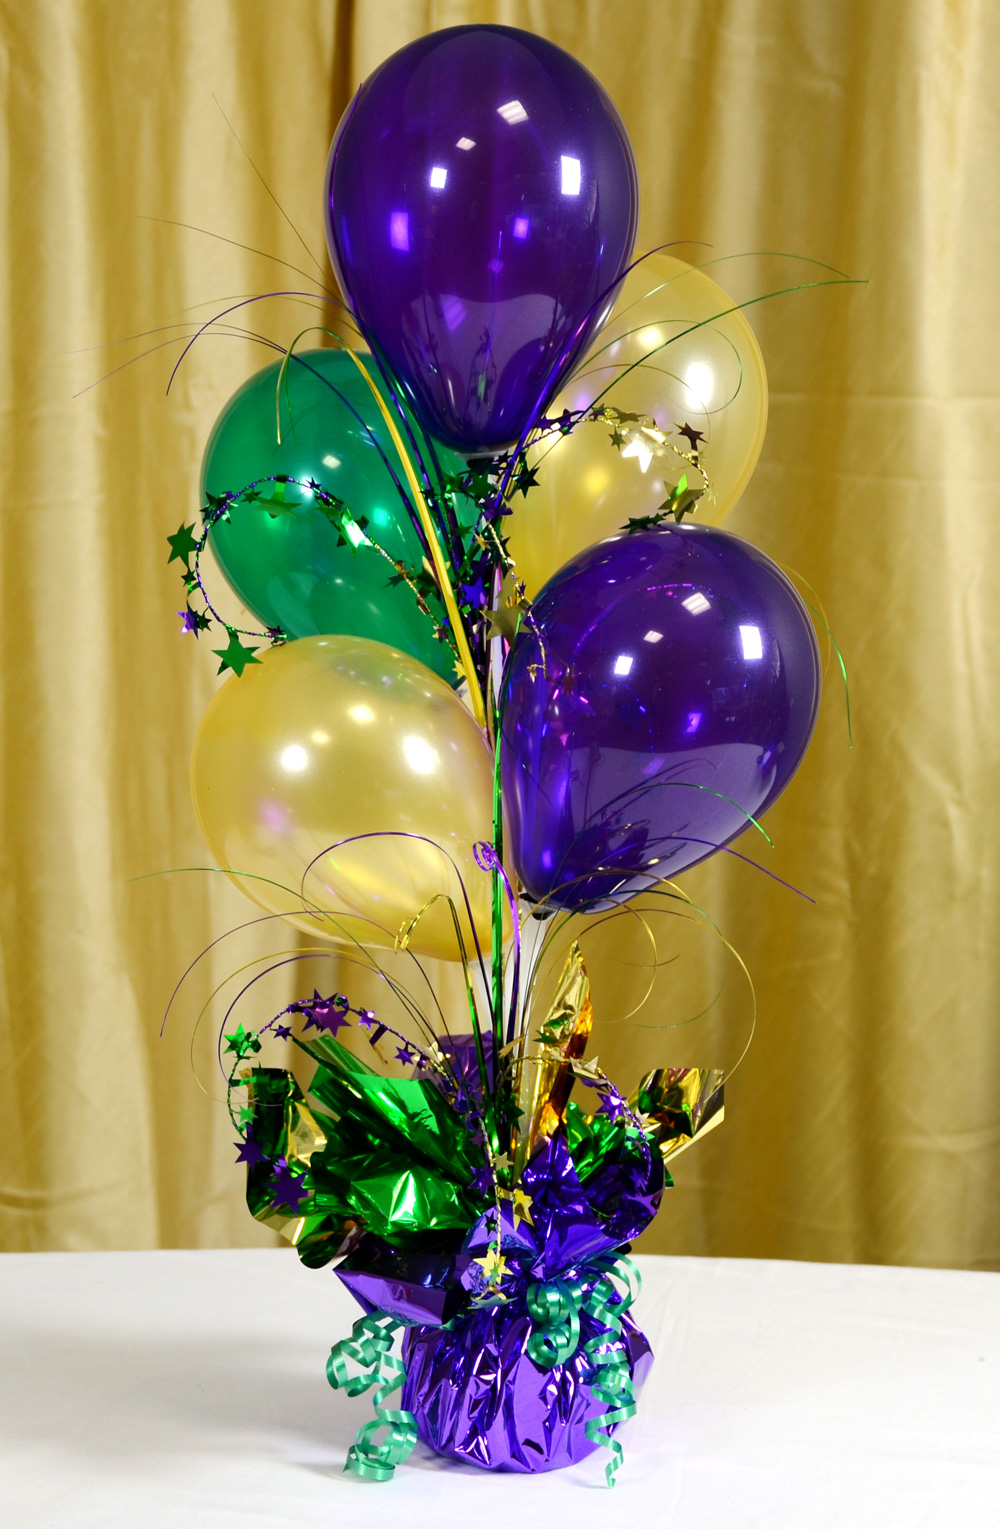 Complete Balloon Centerpiece